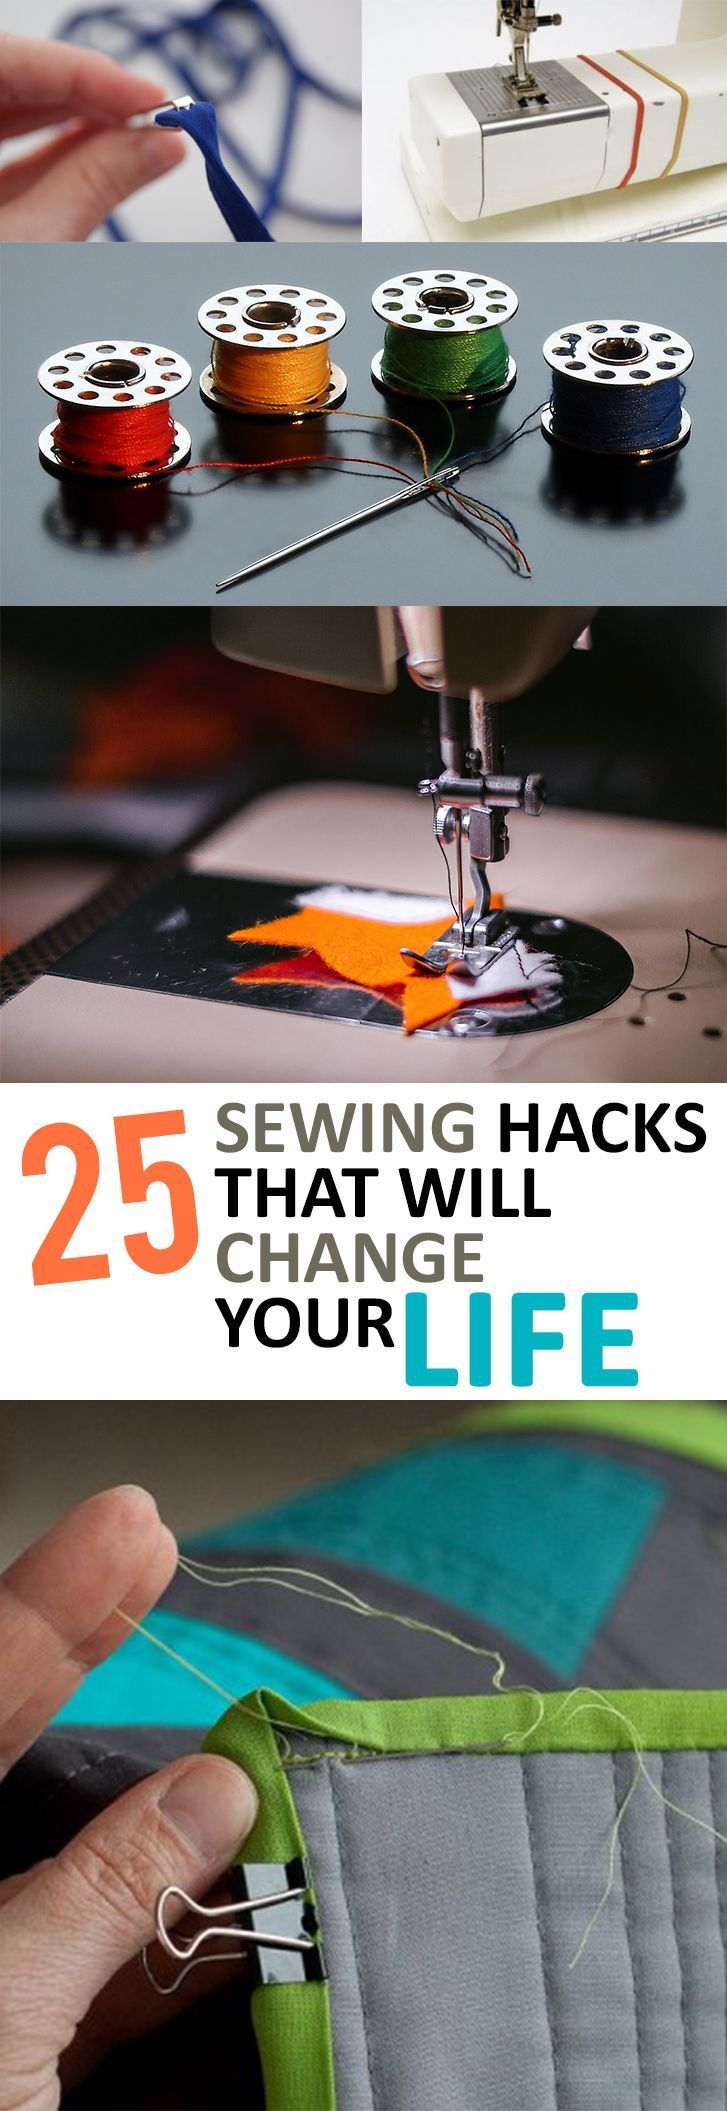 Sewing tips and tricks you need to know                                                                                                                                                                                 More